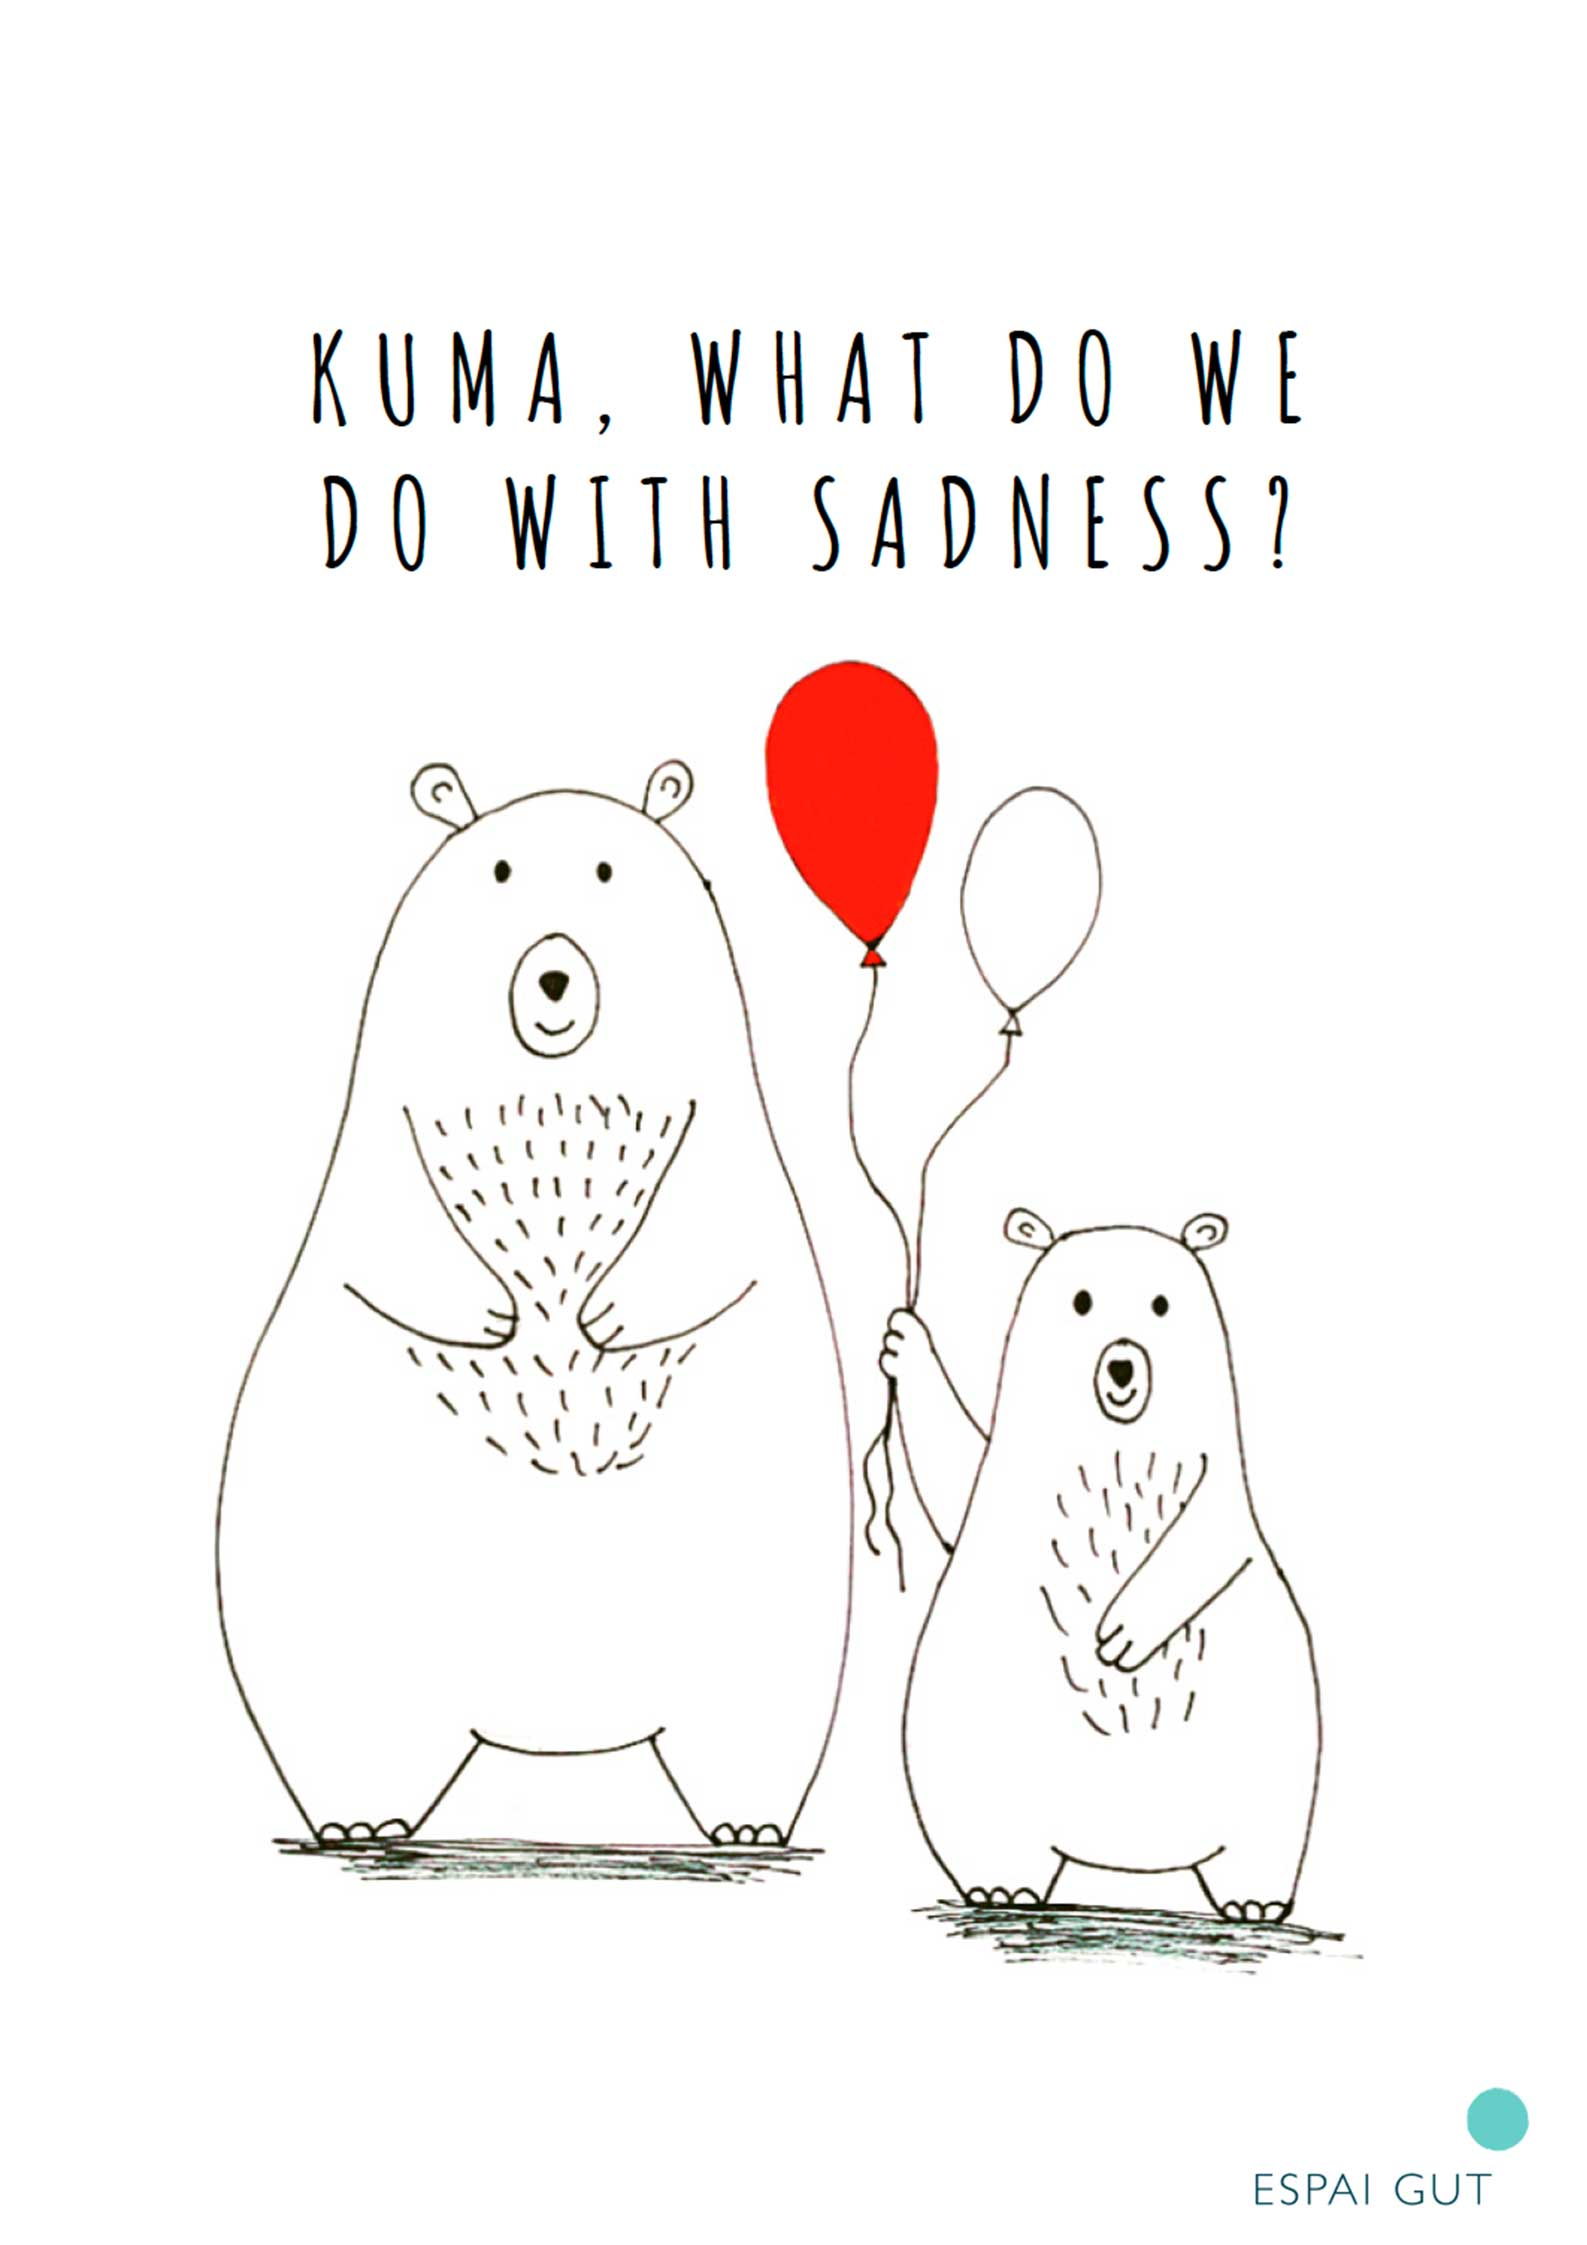 Kuma, what do we do with sadness?